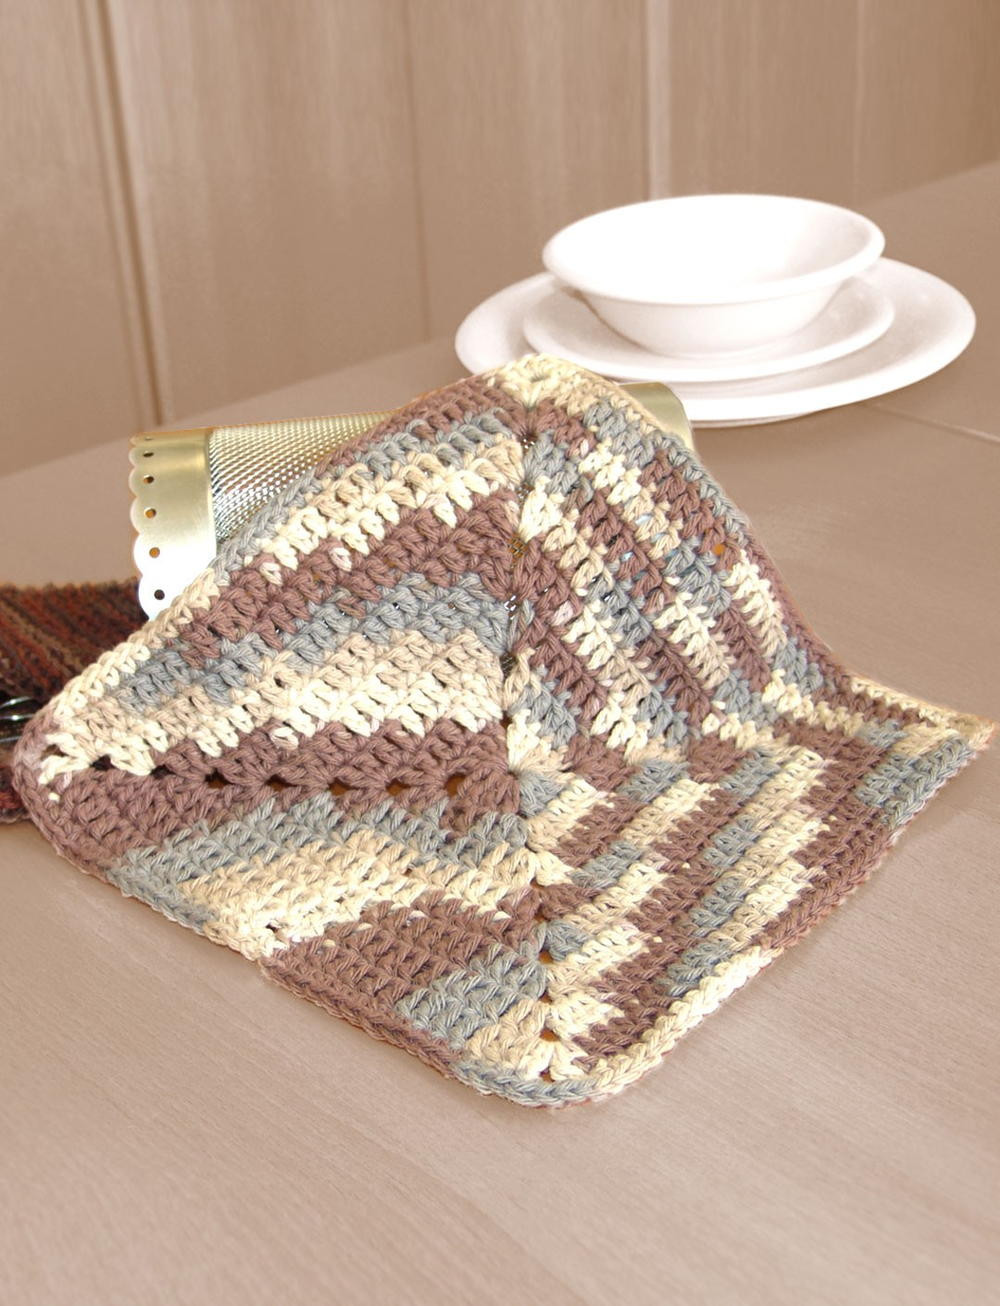 Inspirational Easy Ombre Dishcloth Crochet Pattern Free Dishcloth Patterns Of Attractive 40 Ideas Free Dishcloth Patterns